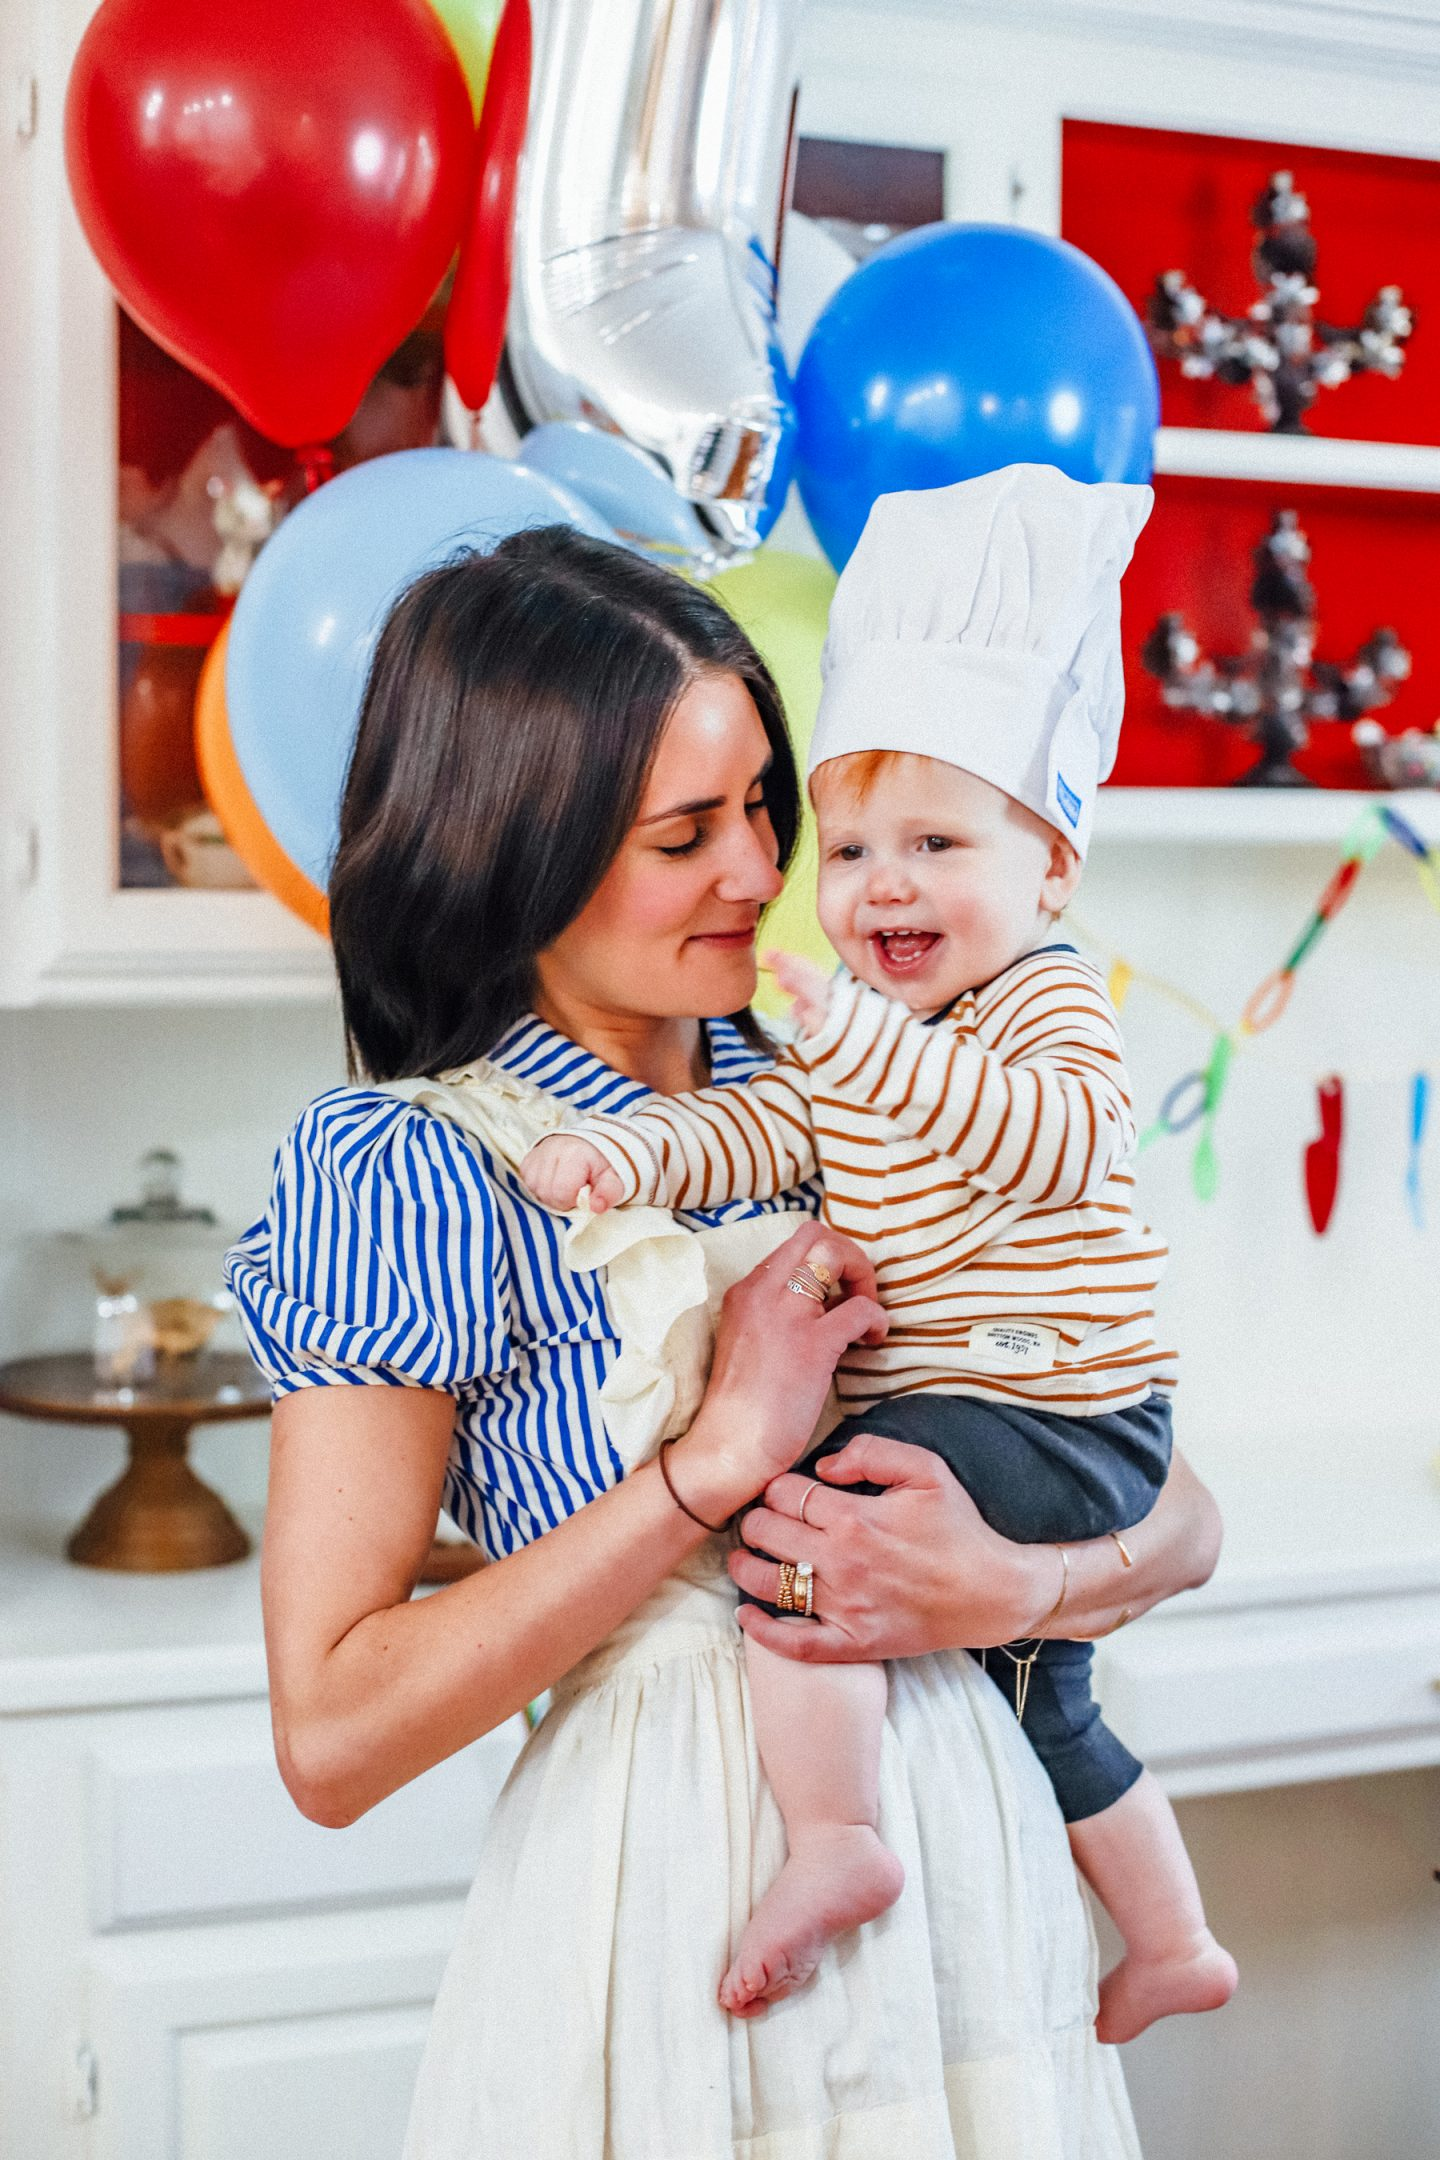 New Blog Series + A Baker Themed 1st Birthday Party